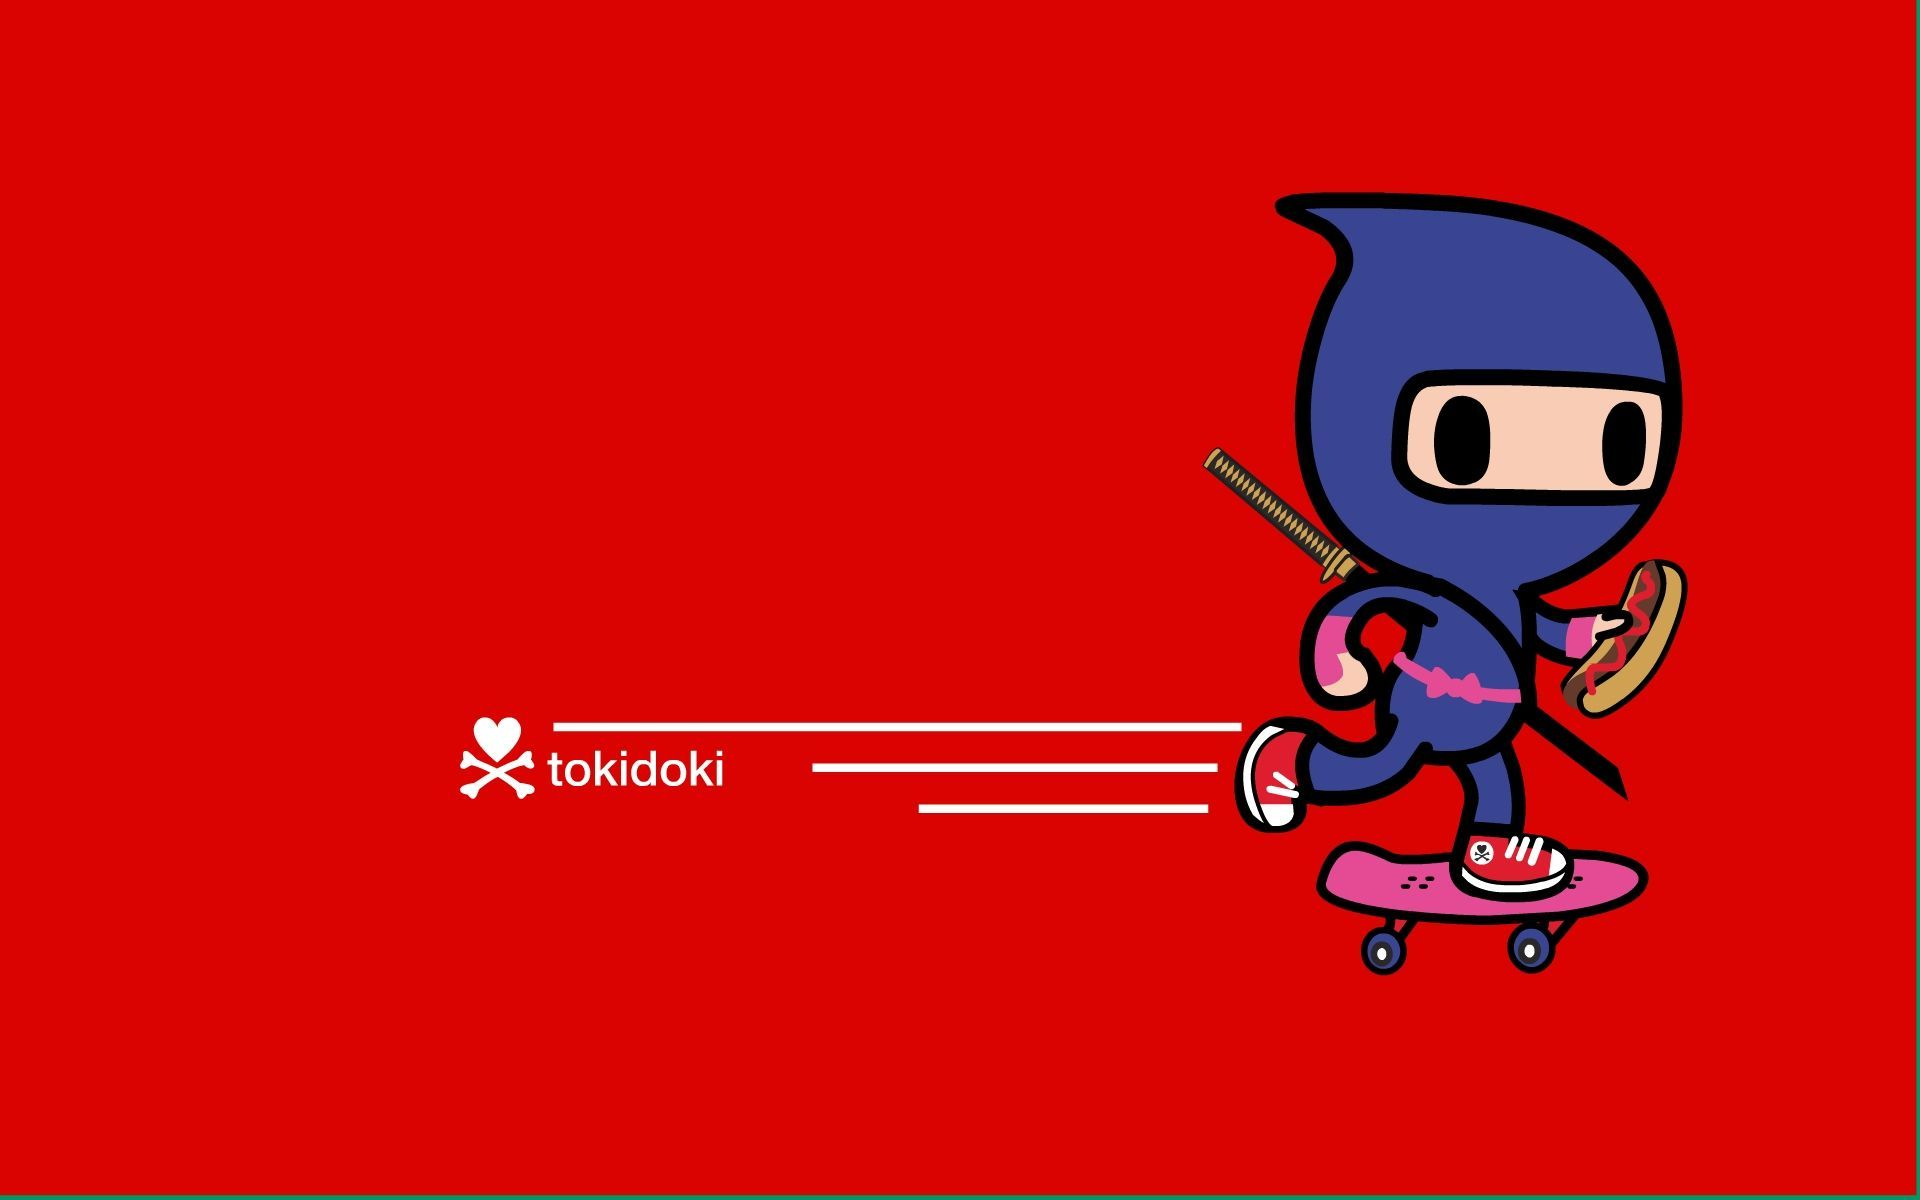 1920x1200 Tokidoki wallpaper Group (60+)